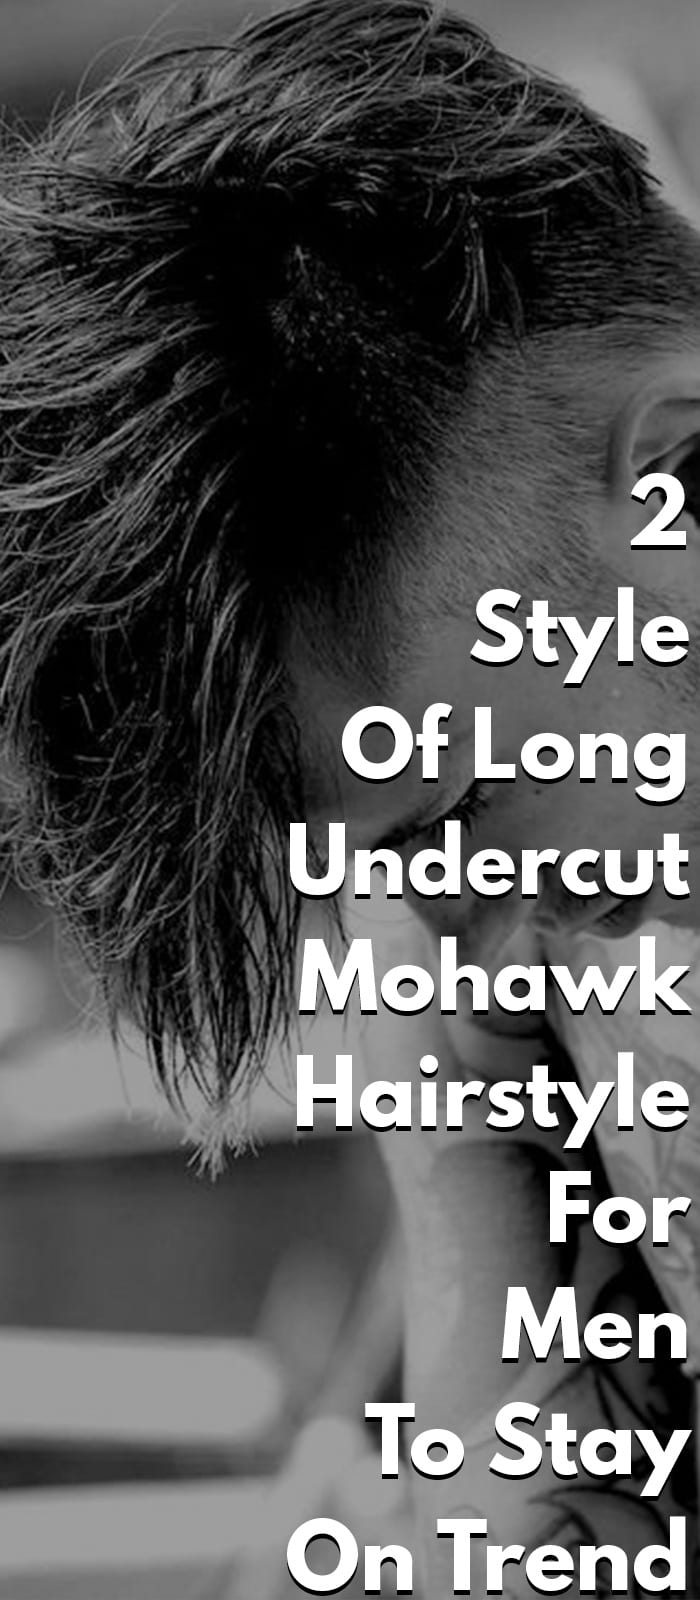 2 Style Of Long Undercut Mohawk Hairstyle For Men To Stay On Trend